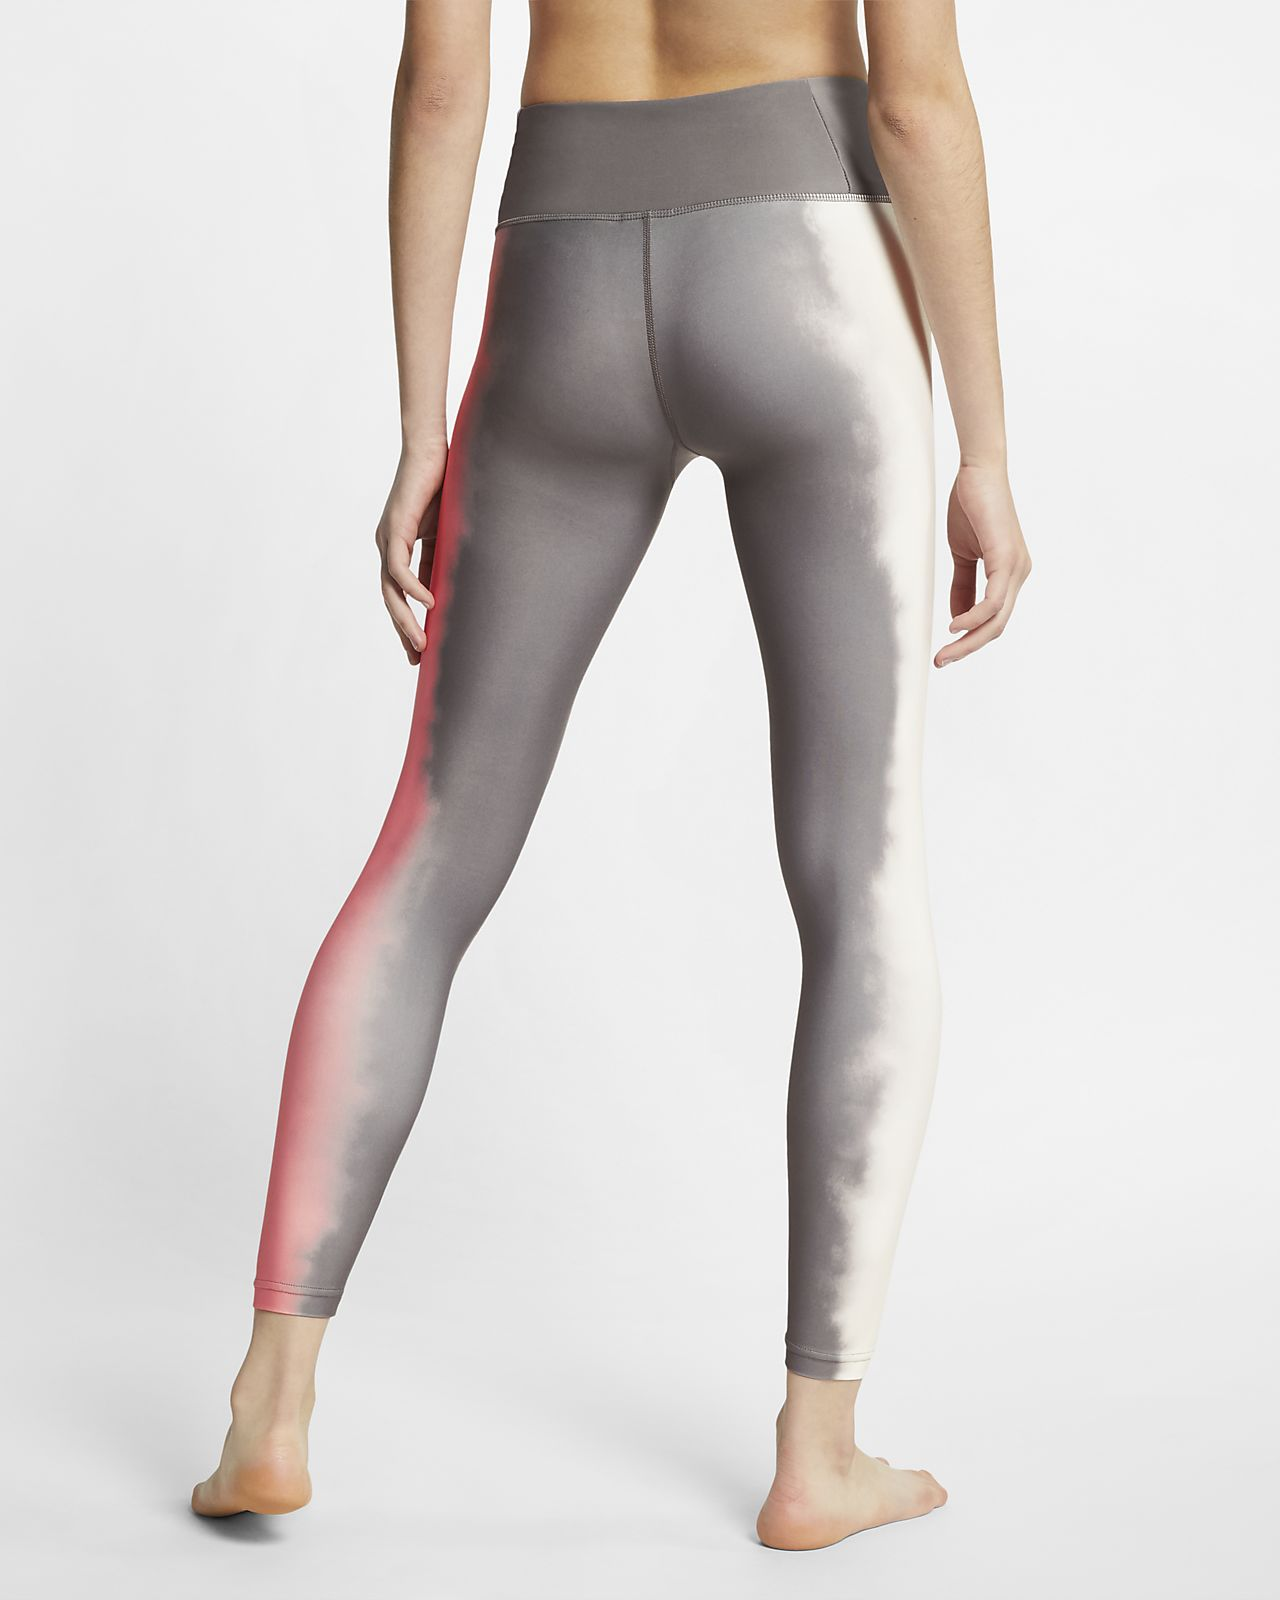 59f5c92f3b Hurley Quick Dry Gradient Women's Surf Leggings. Nike.com GB